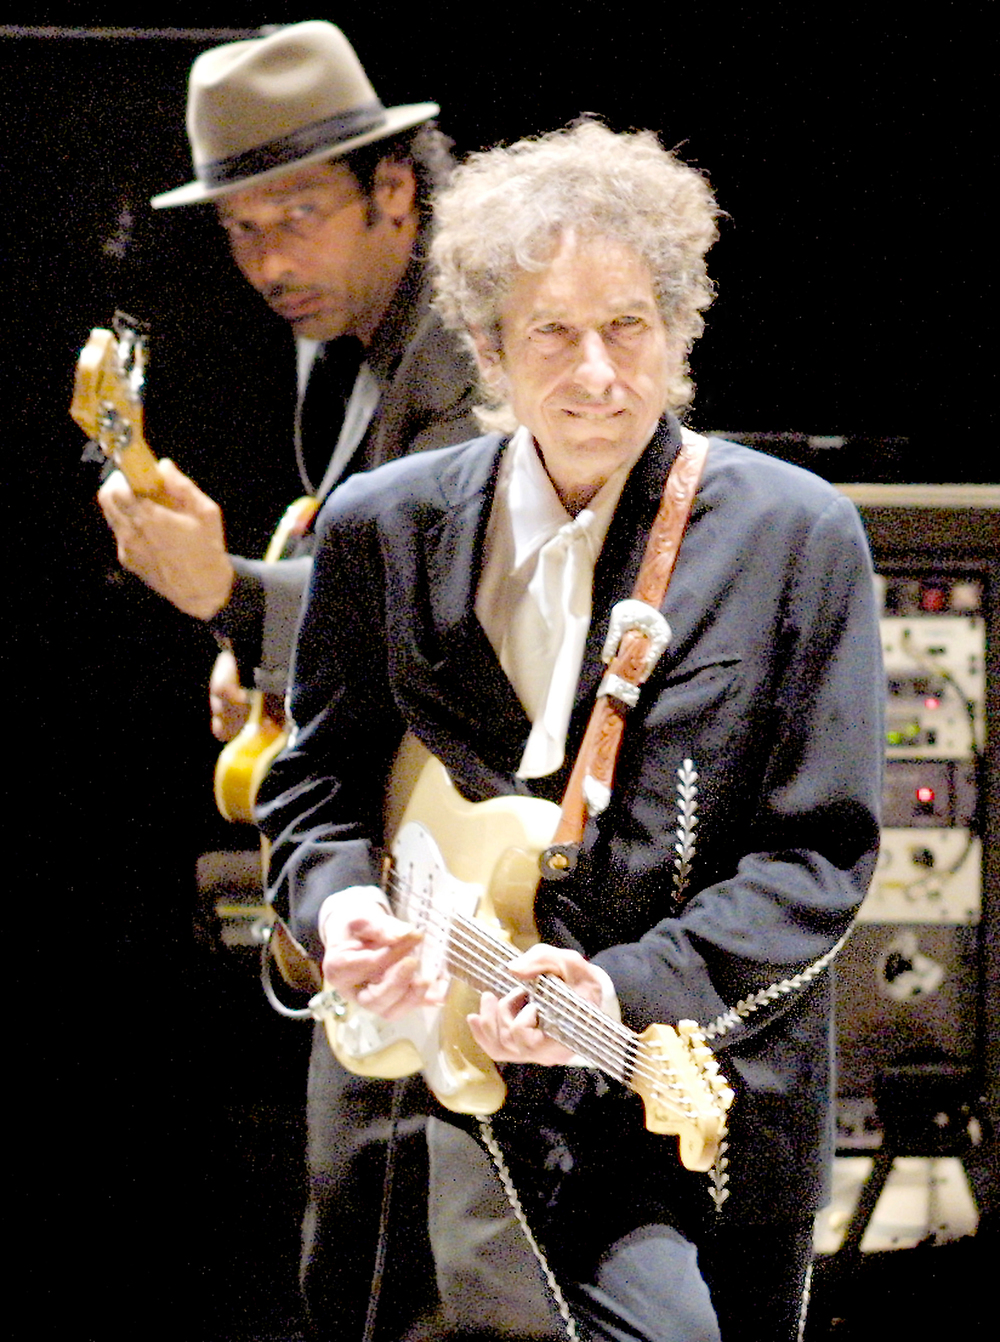 2001: Singer-songwriter and American music legend Bob Dylan. Dylan also performed in 1989.